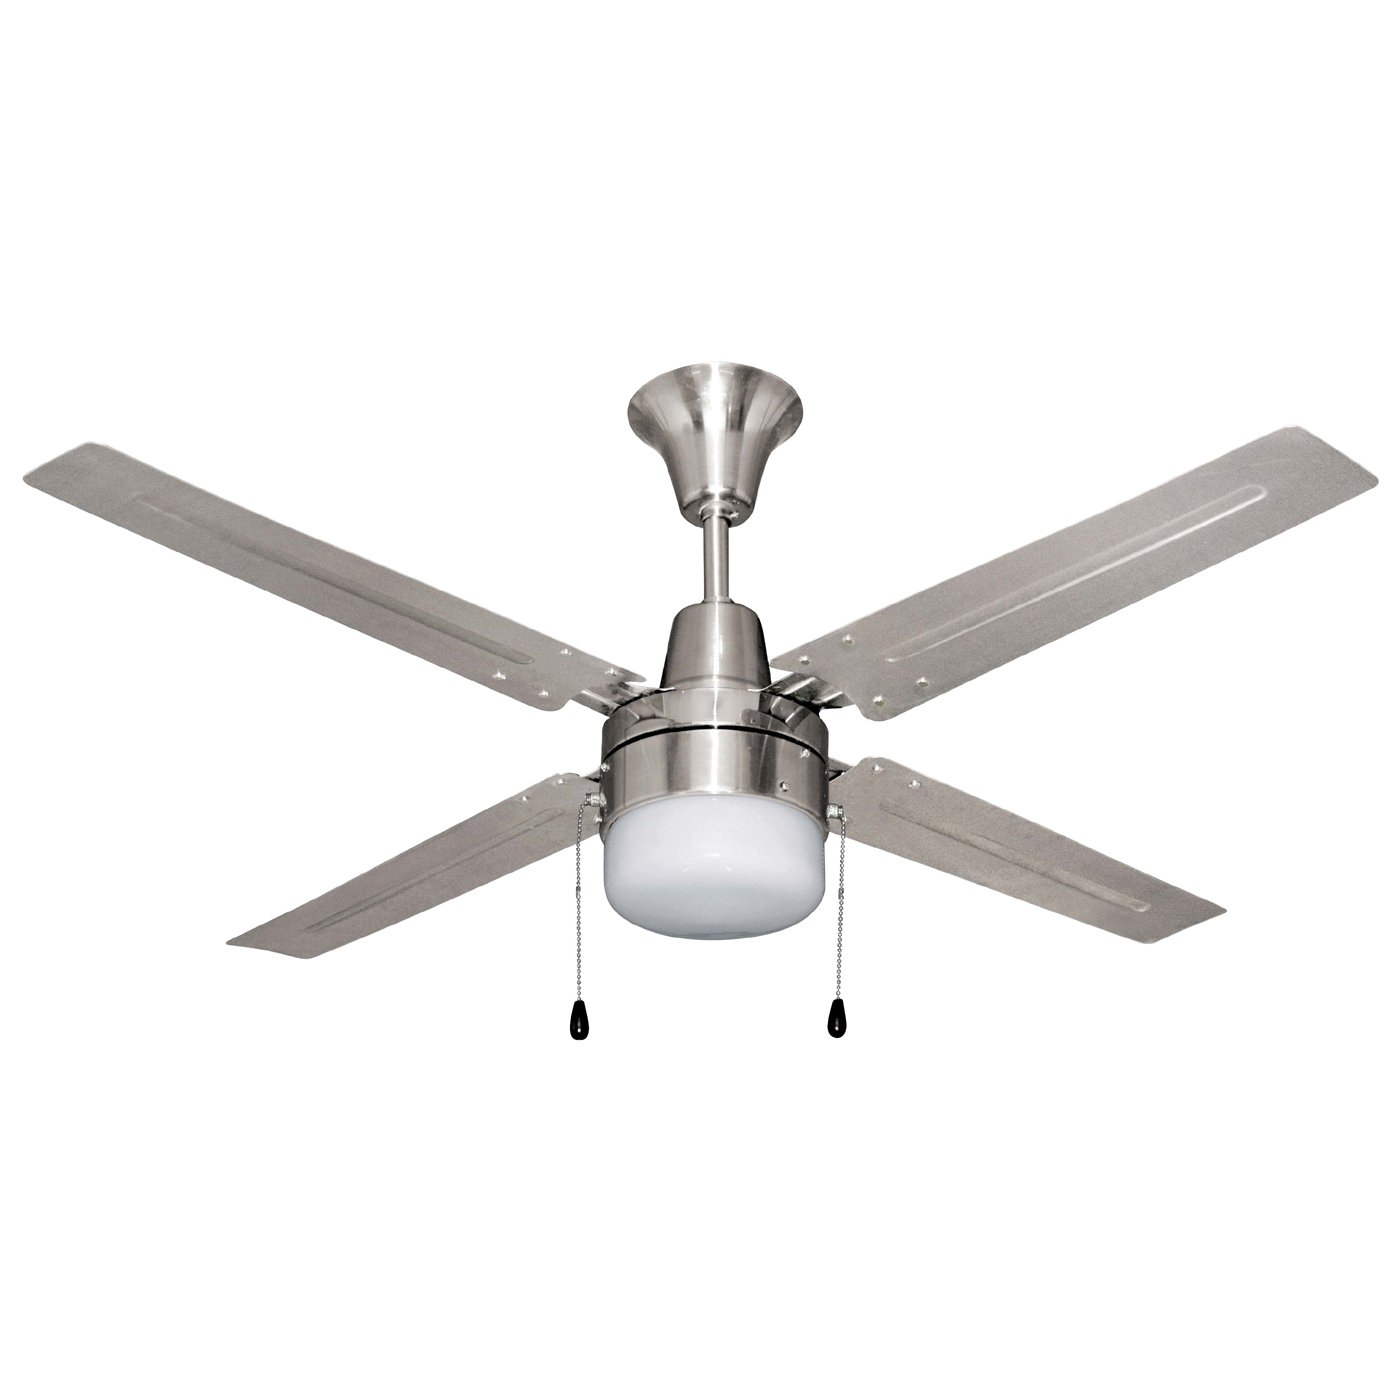 Opiniones de The Ceiling Fan Store - Ventiladores De Techo (0)